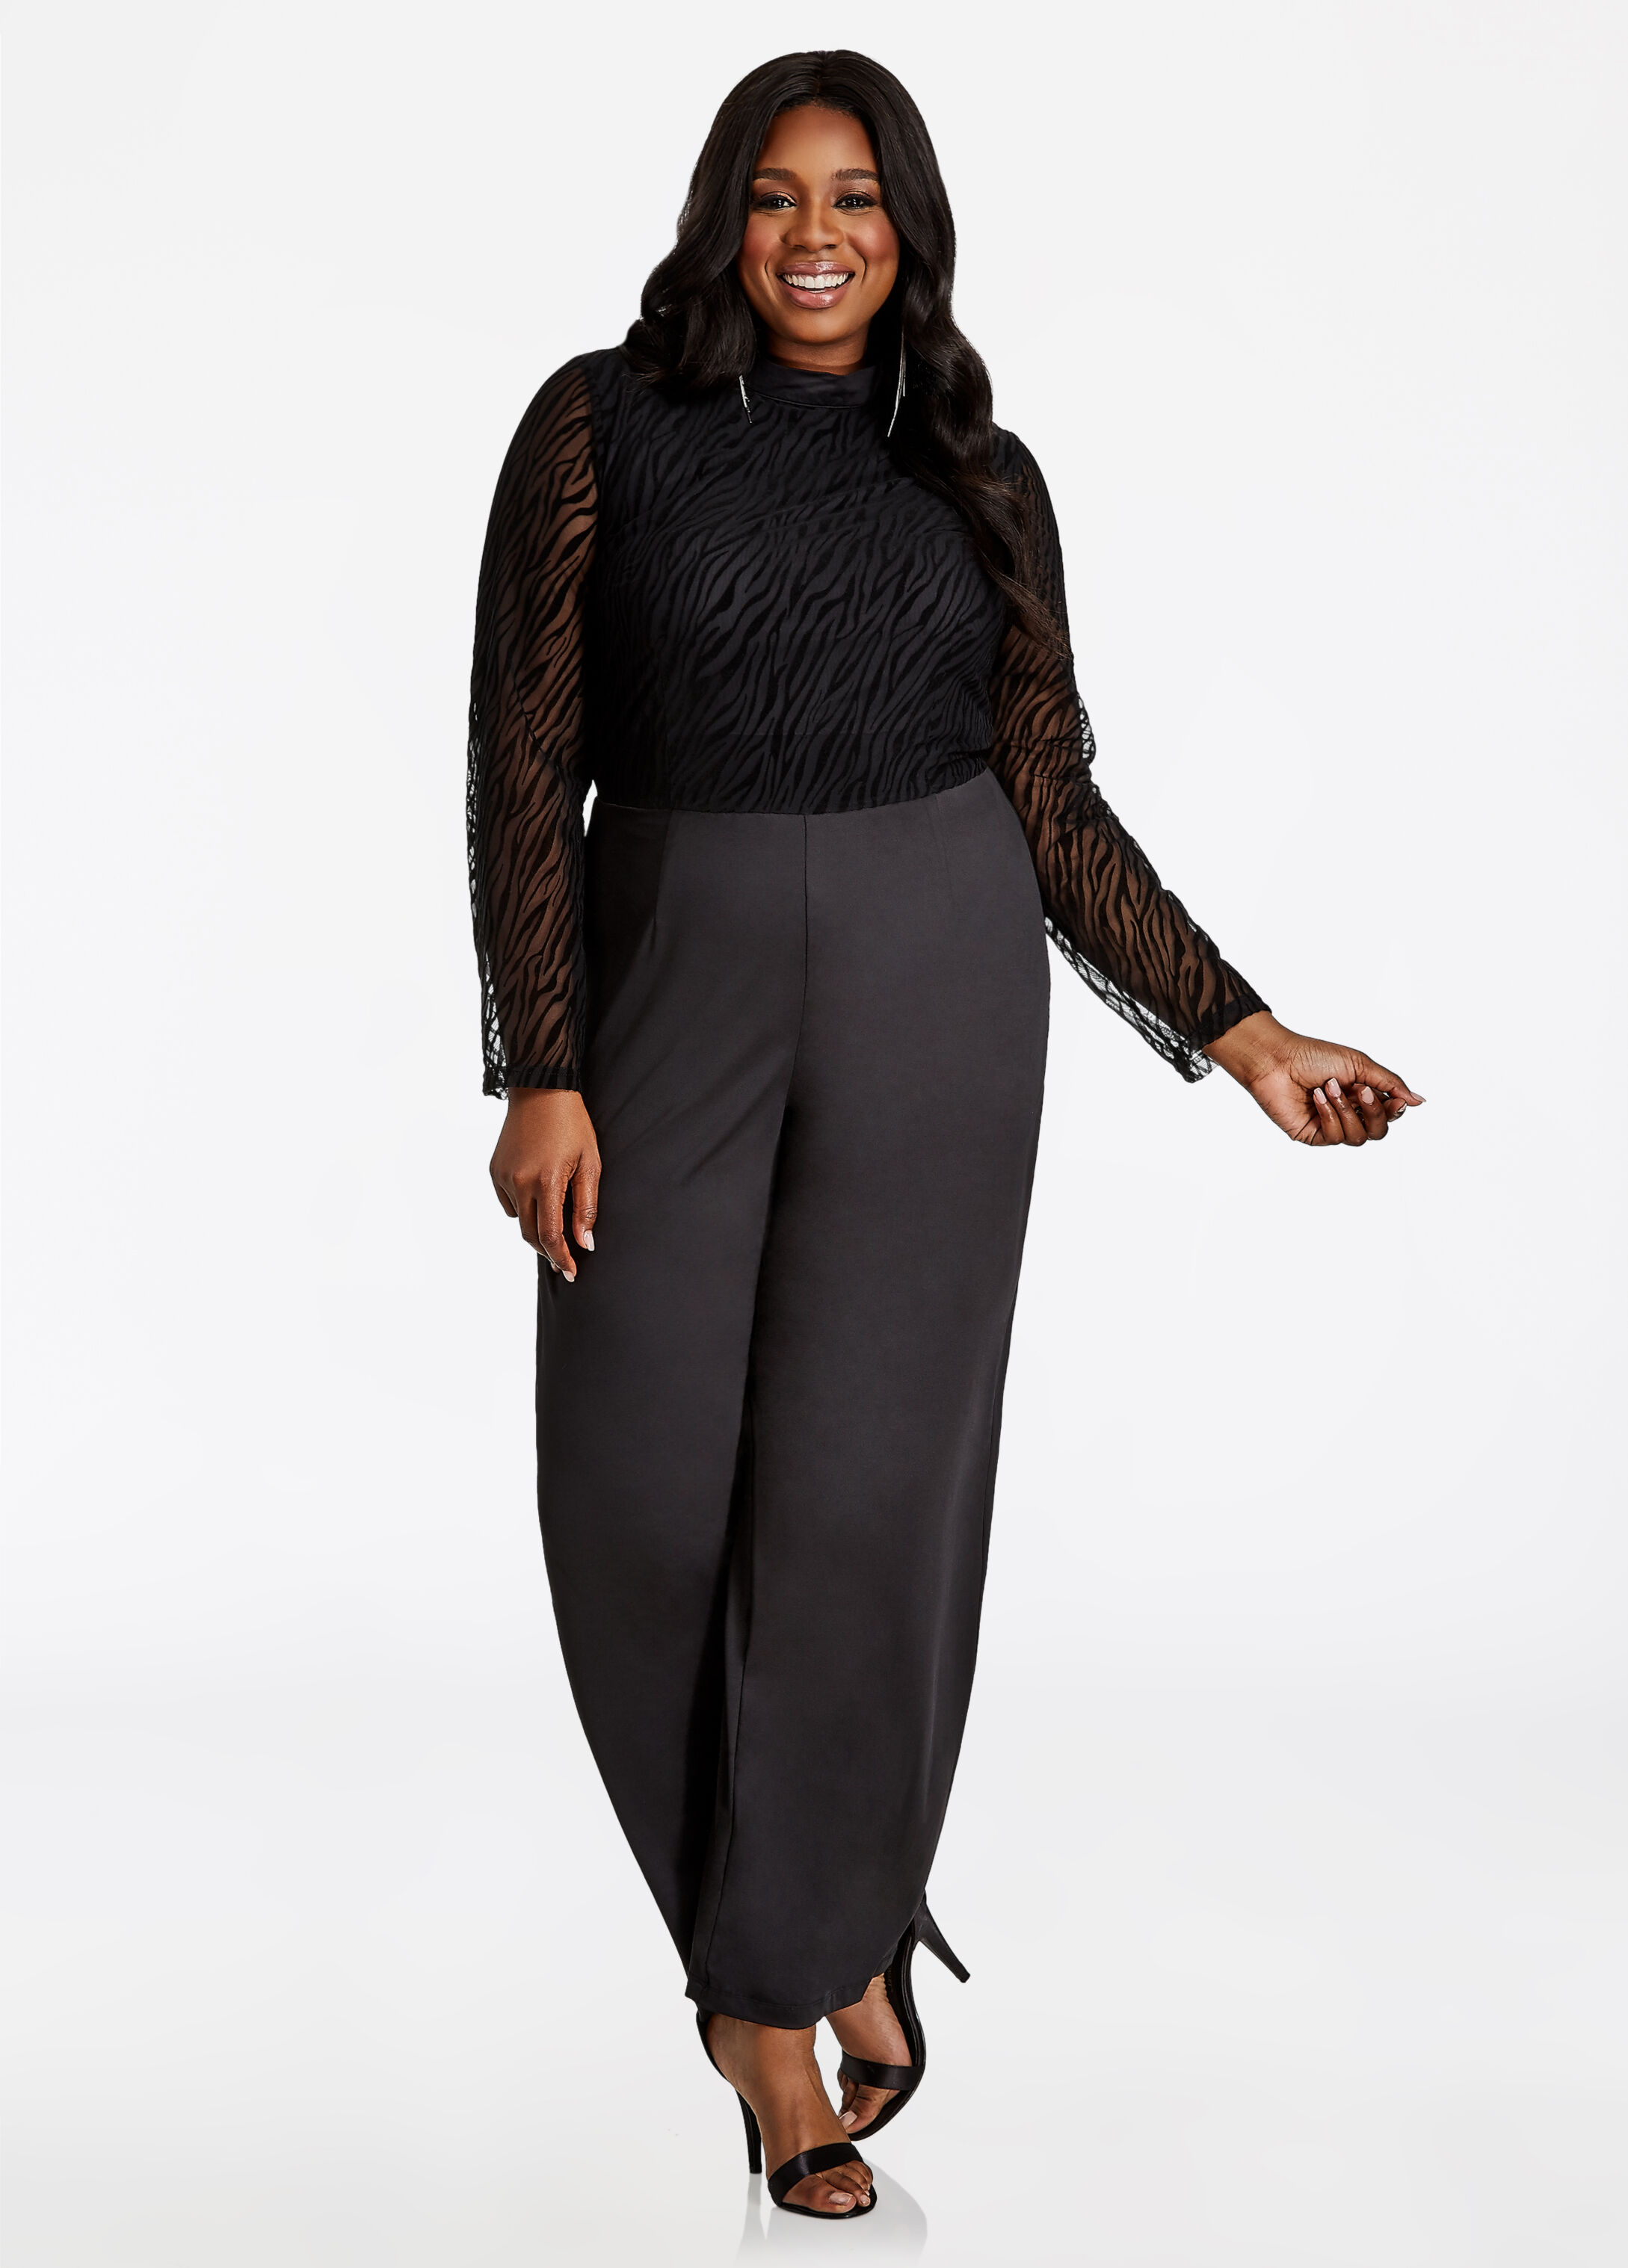 ashley stewart | plus size clothing, dresses, jeans & more, sizes